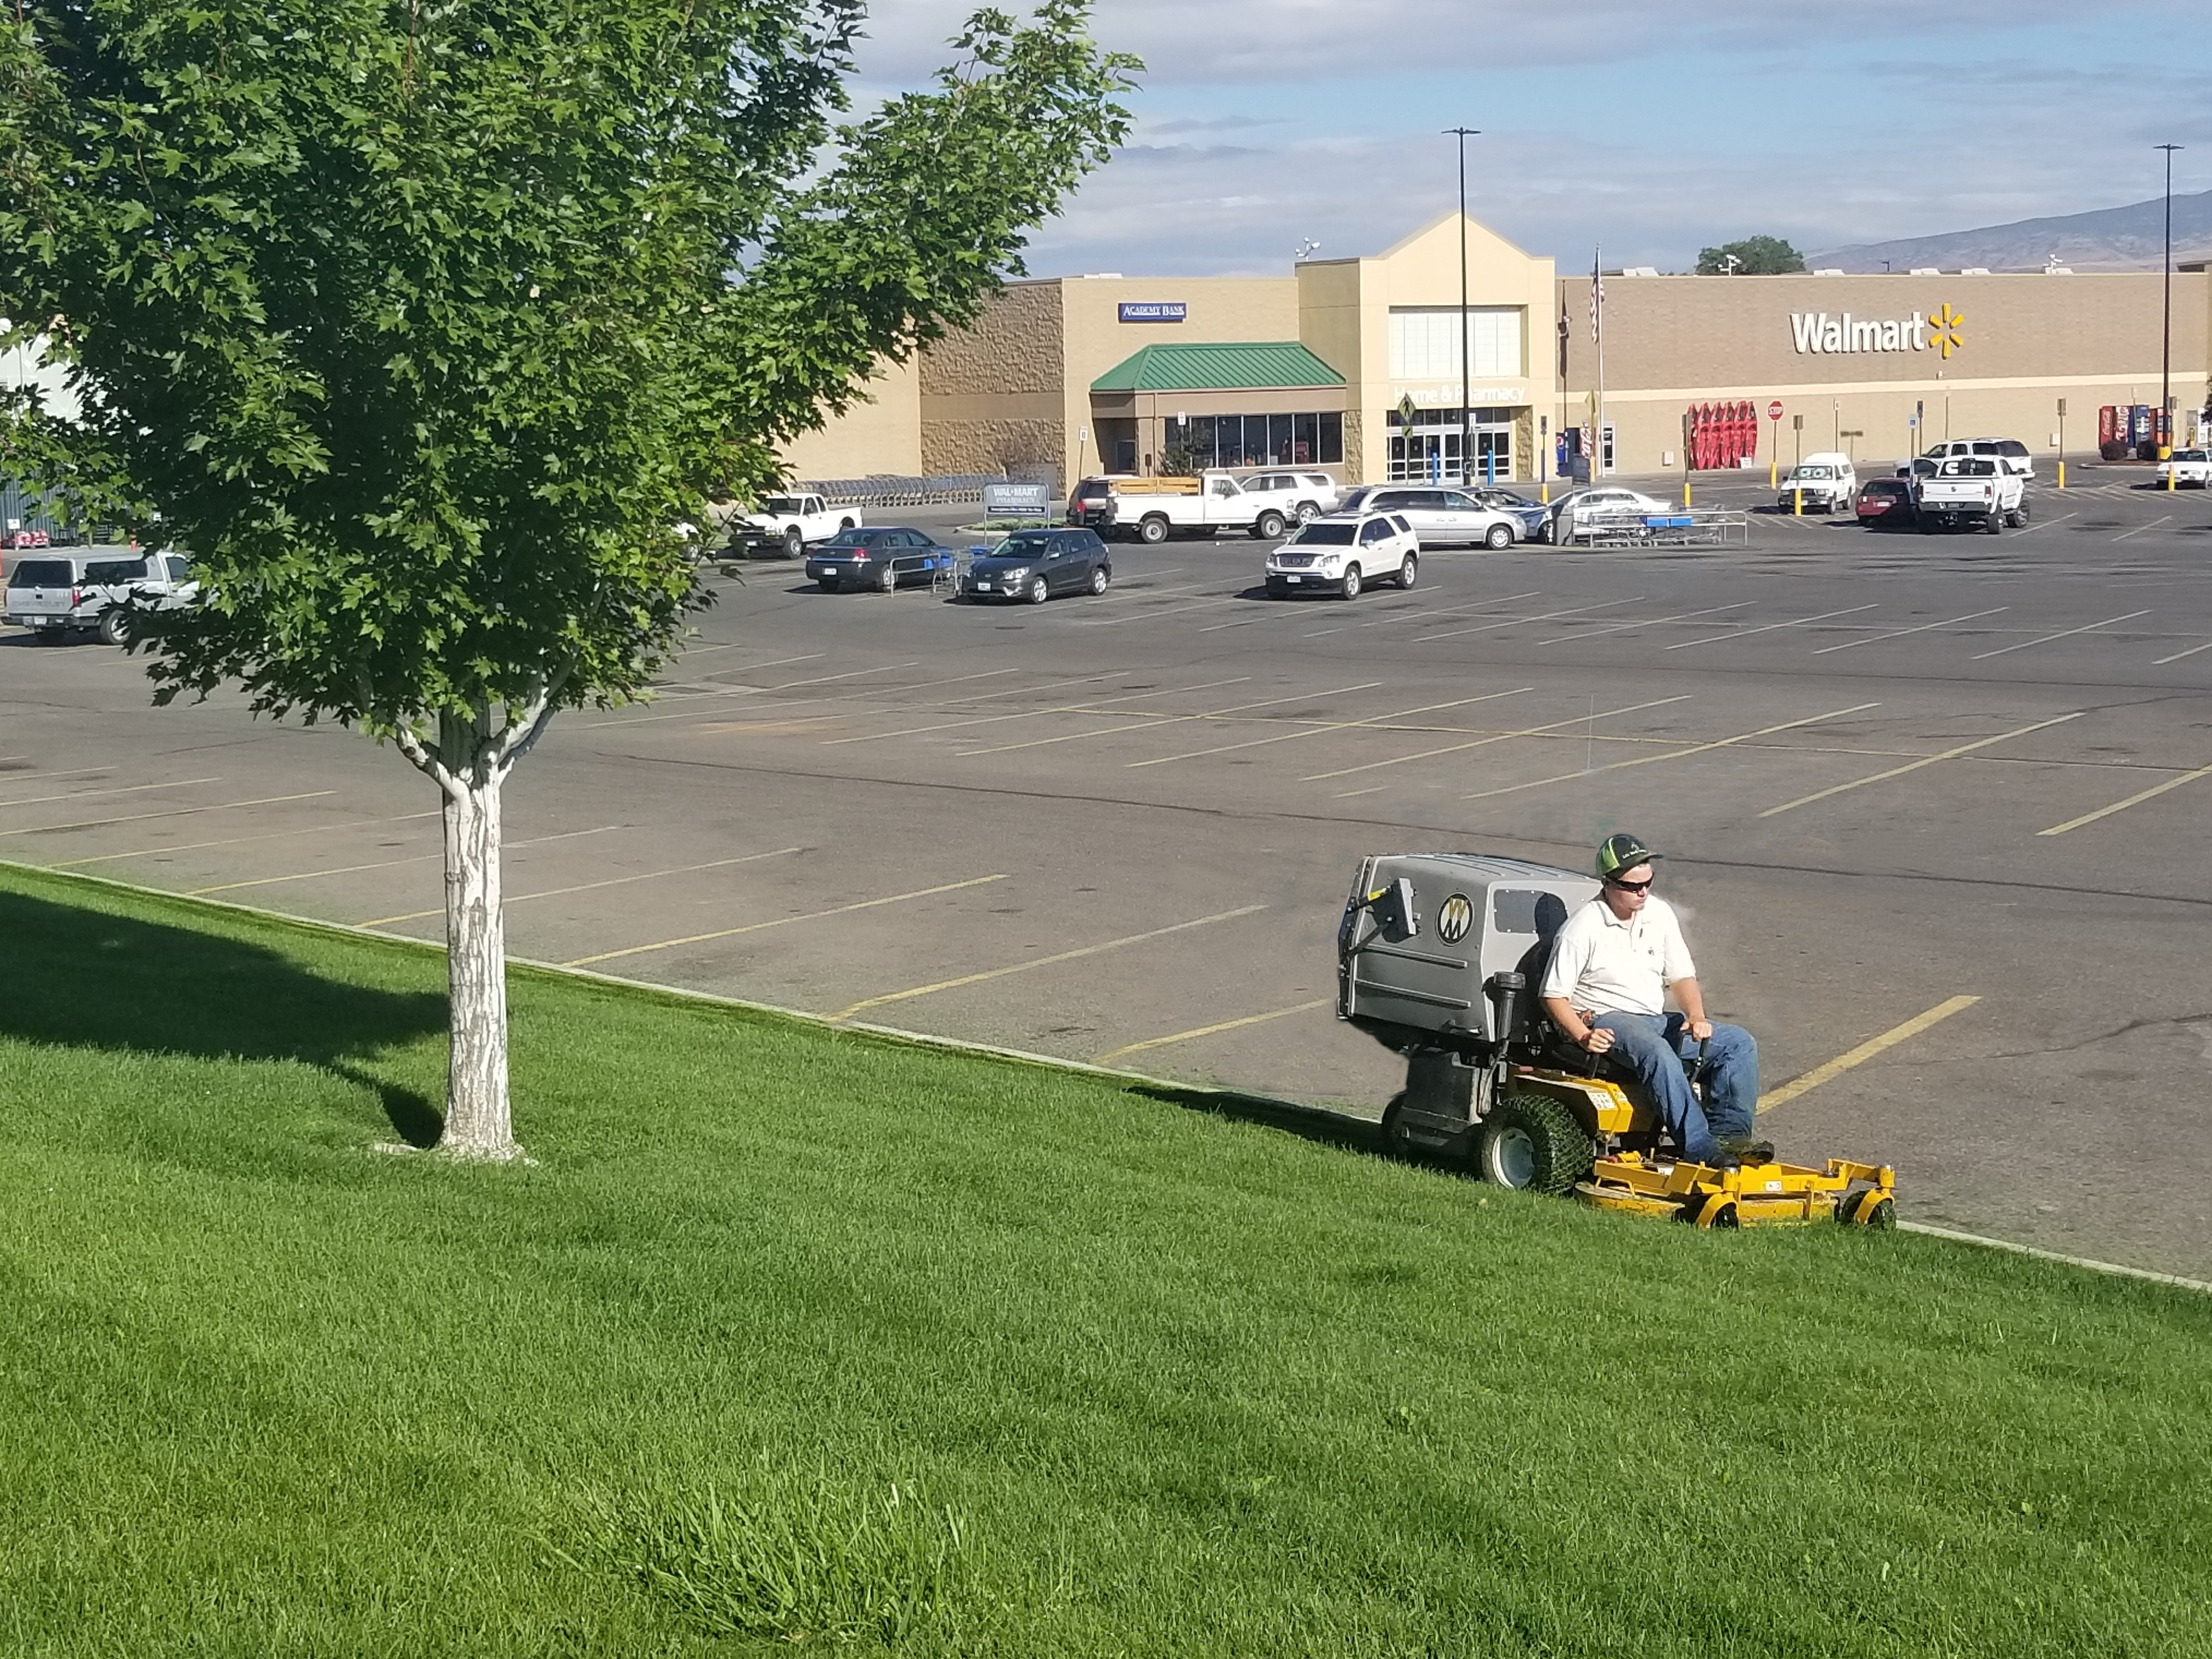 Grass or Lawn Cutting Services Near Me